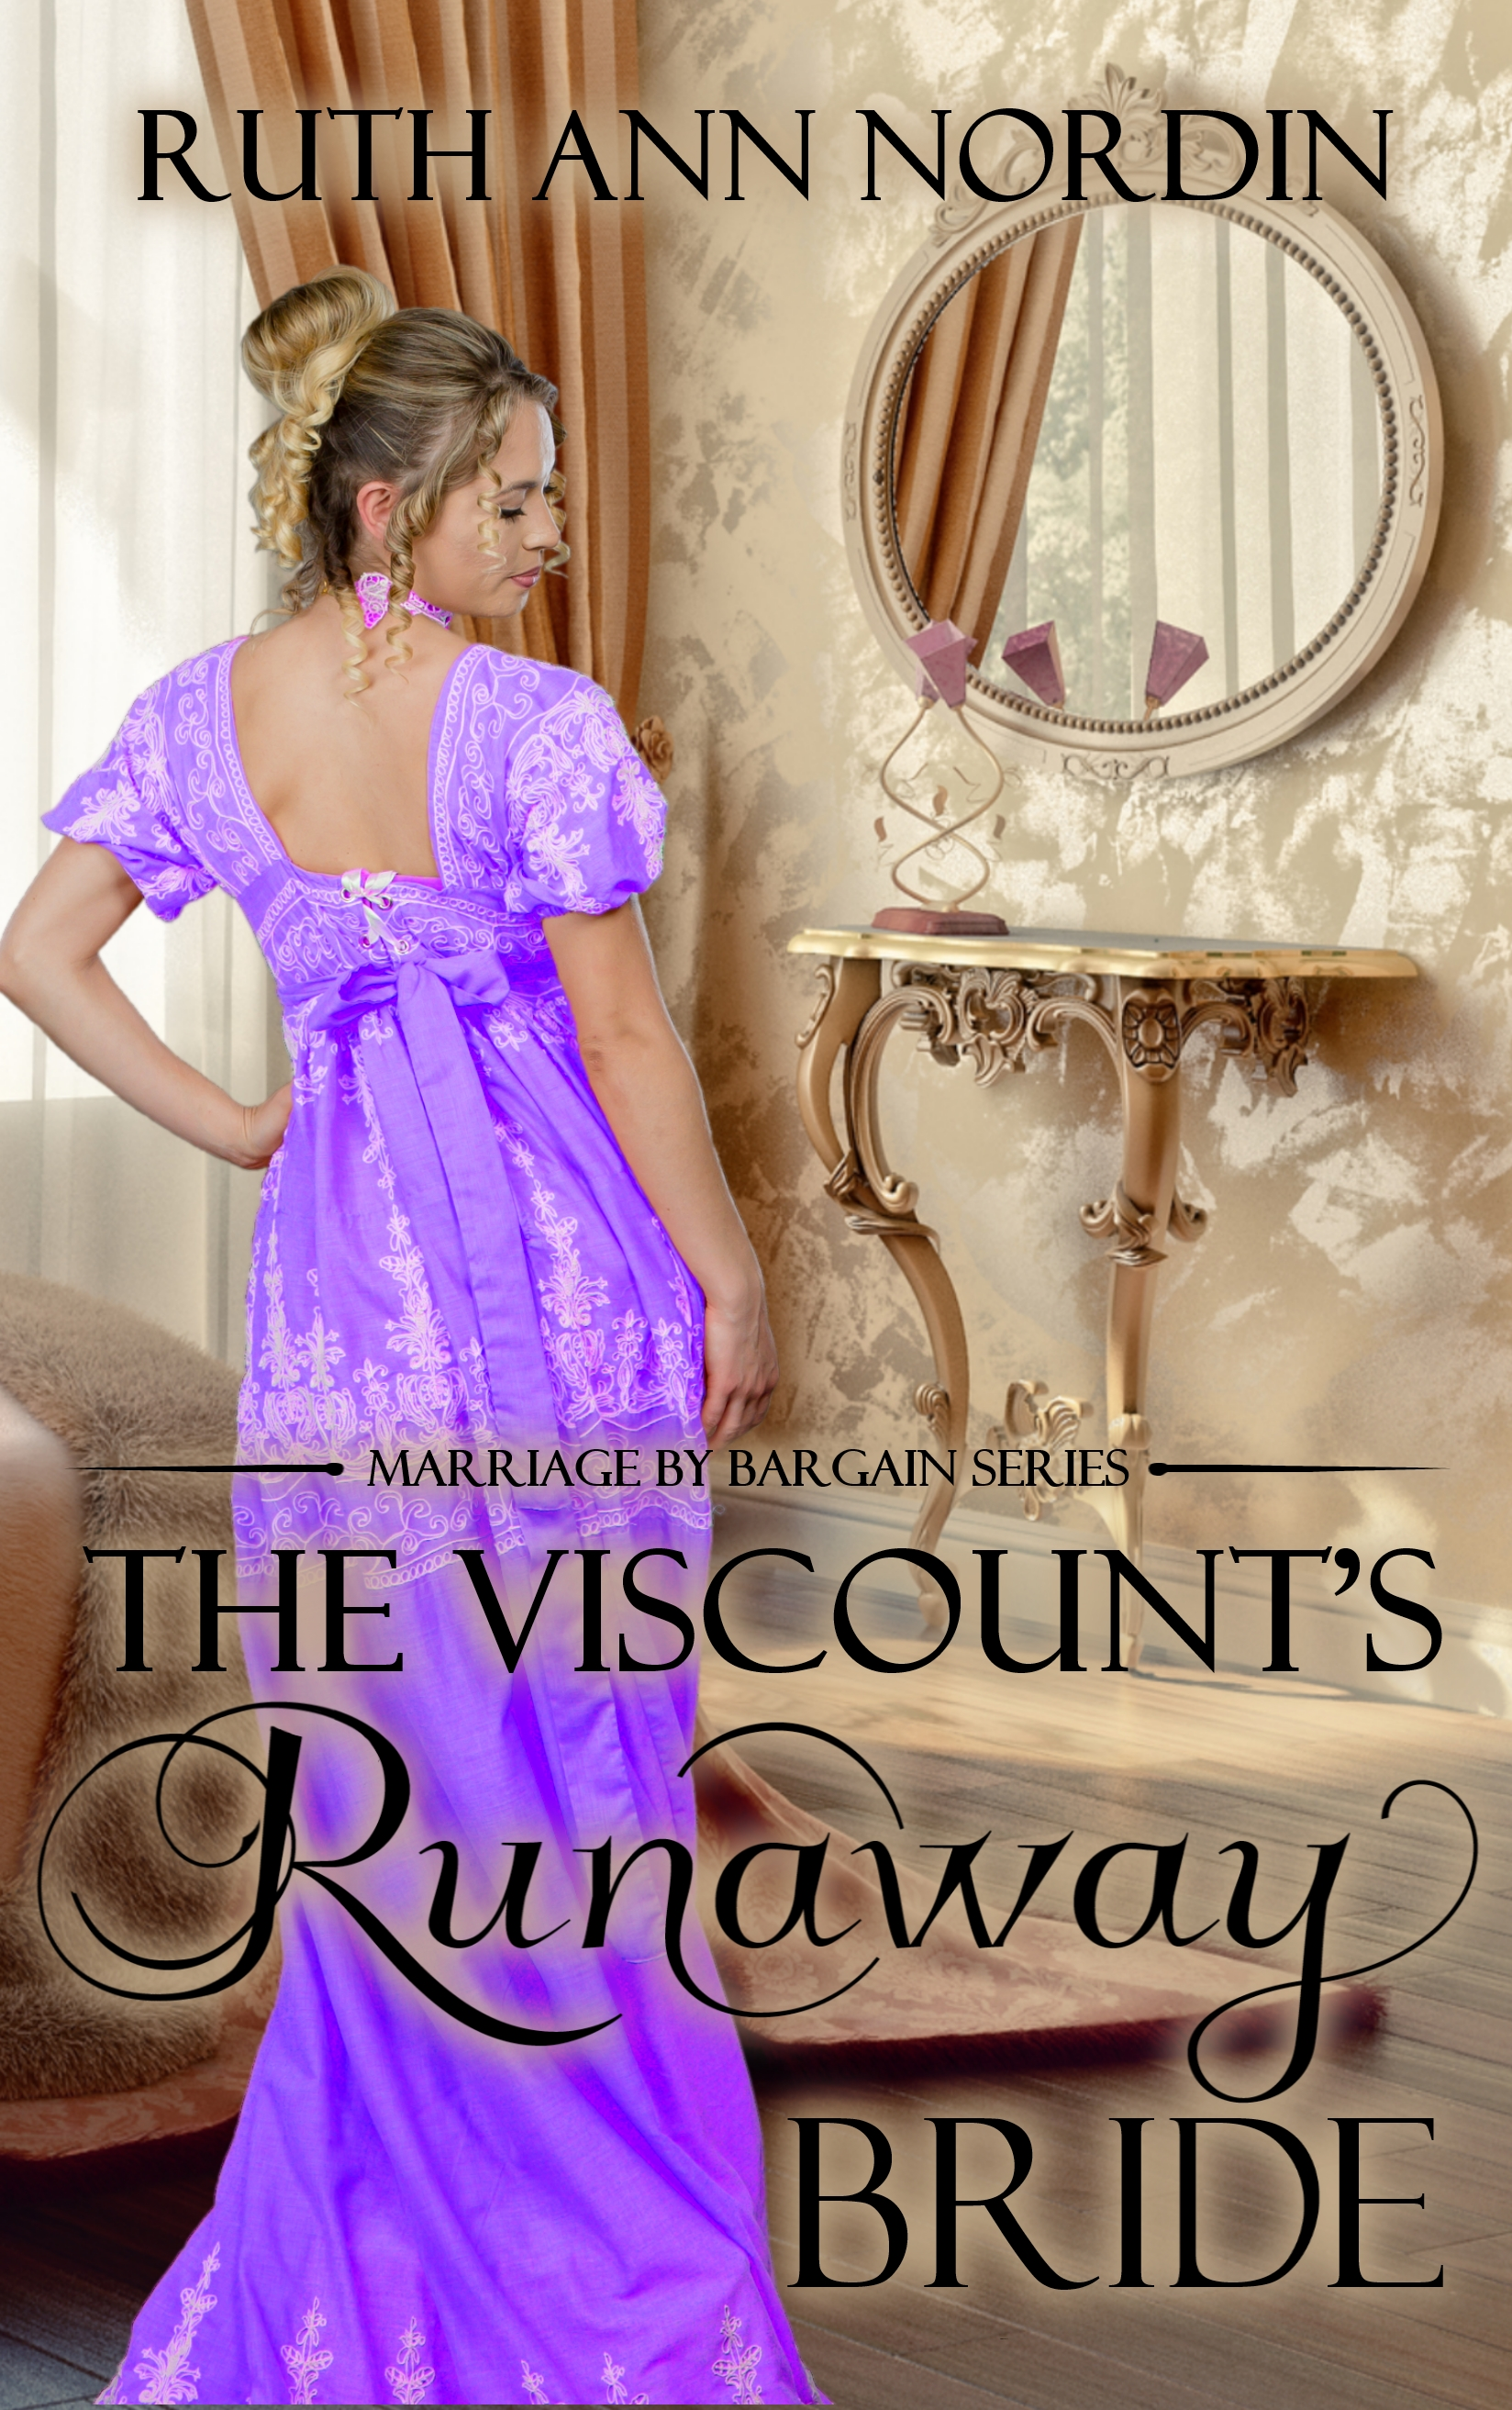 The Viscount's Runaway Bride